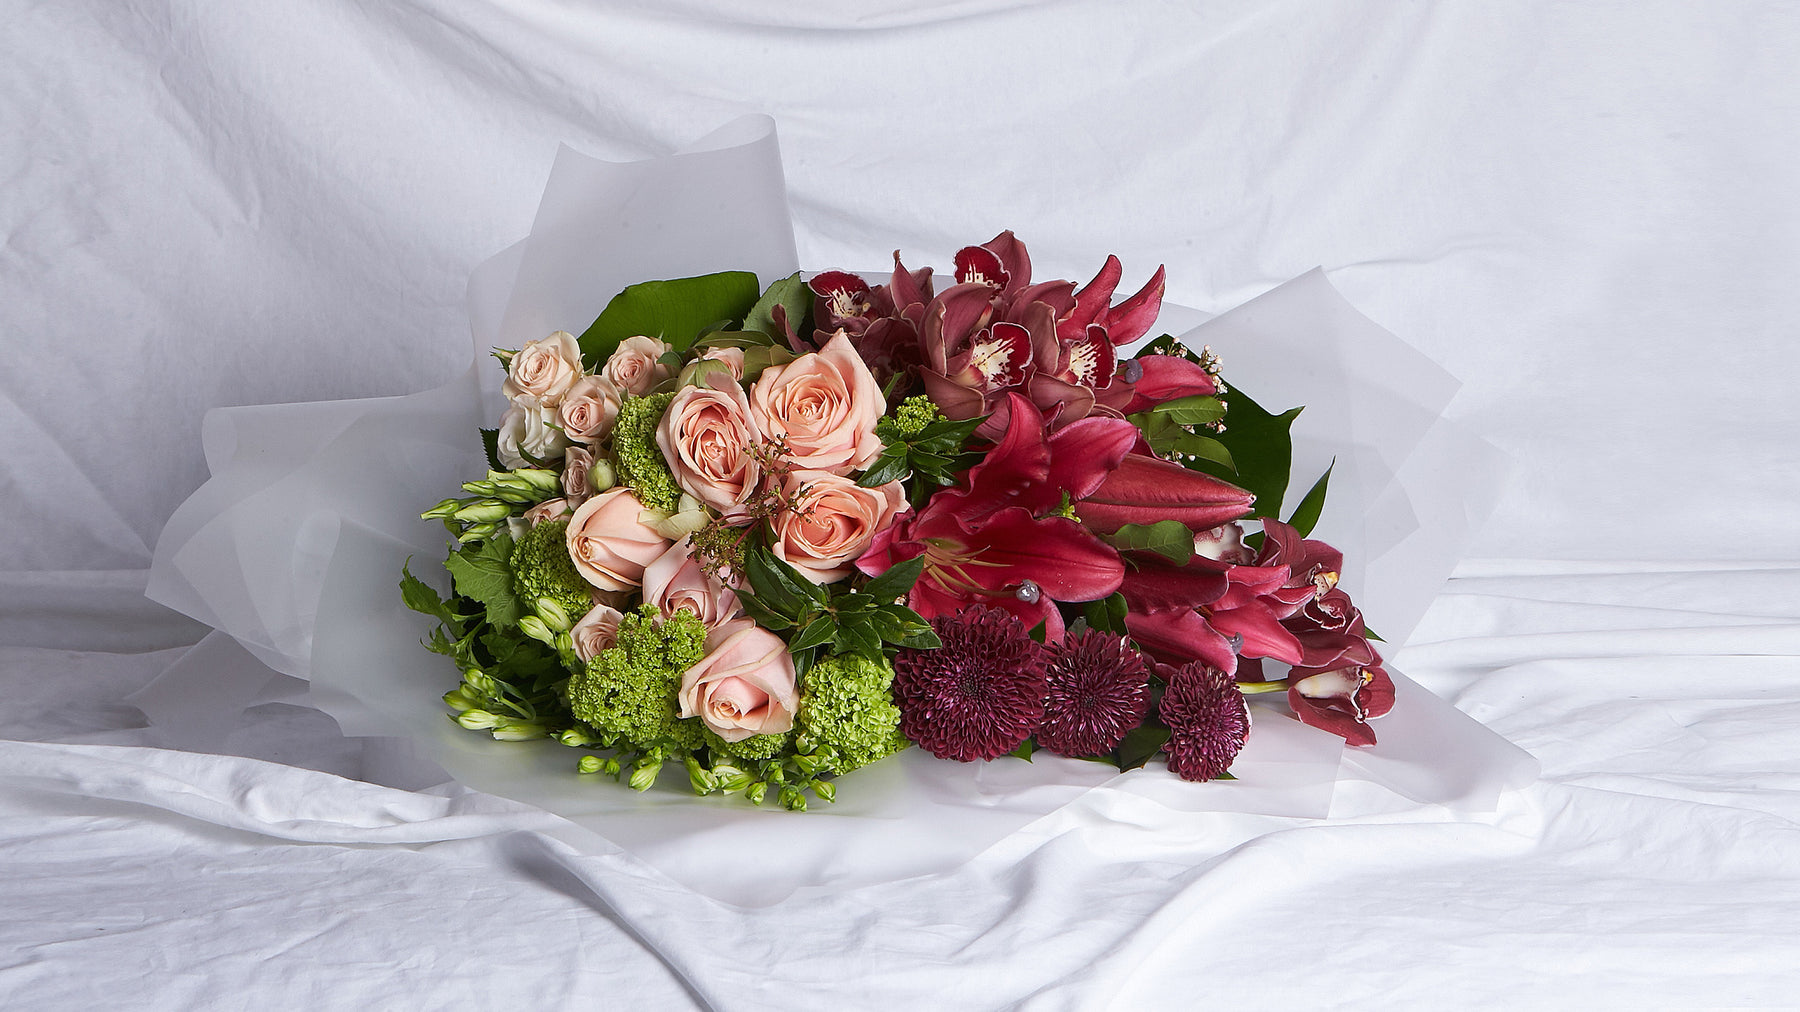 The Burgundy, Peach & Green Bouquet